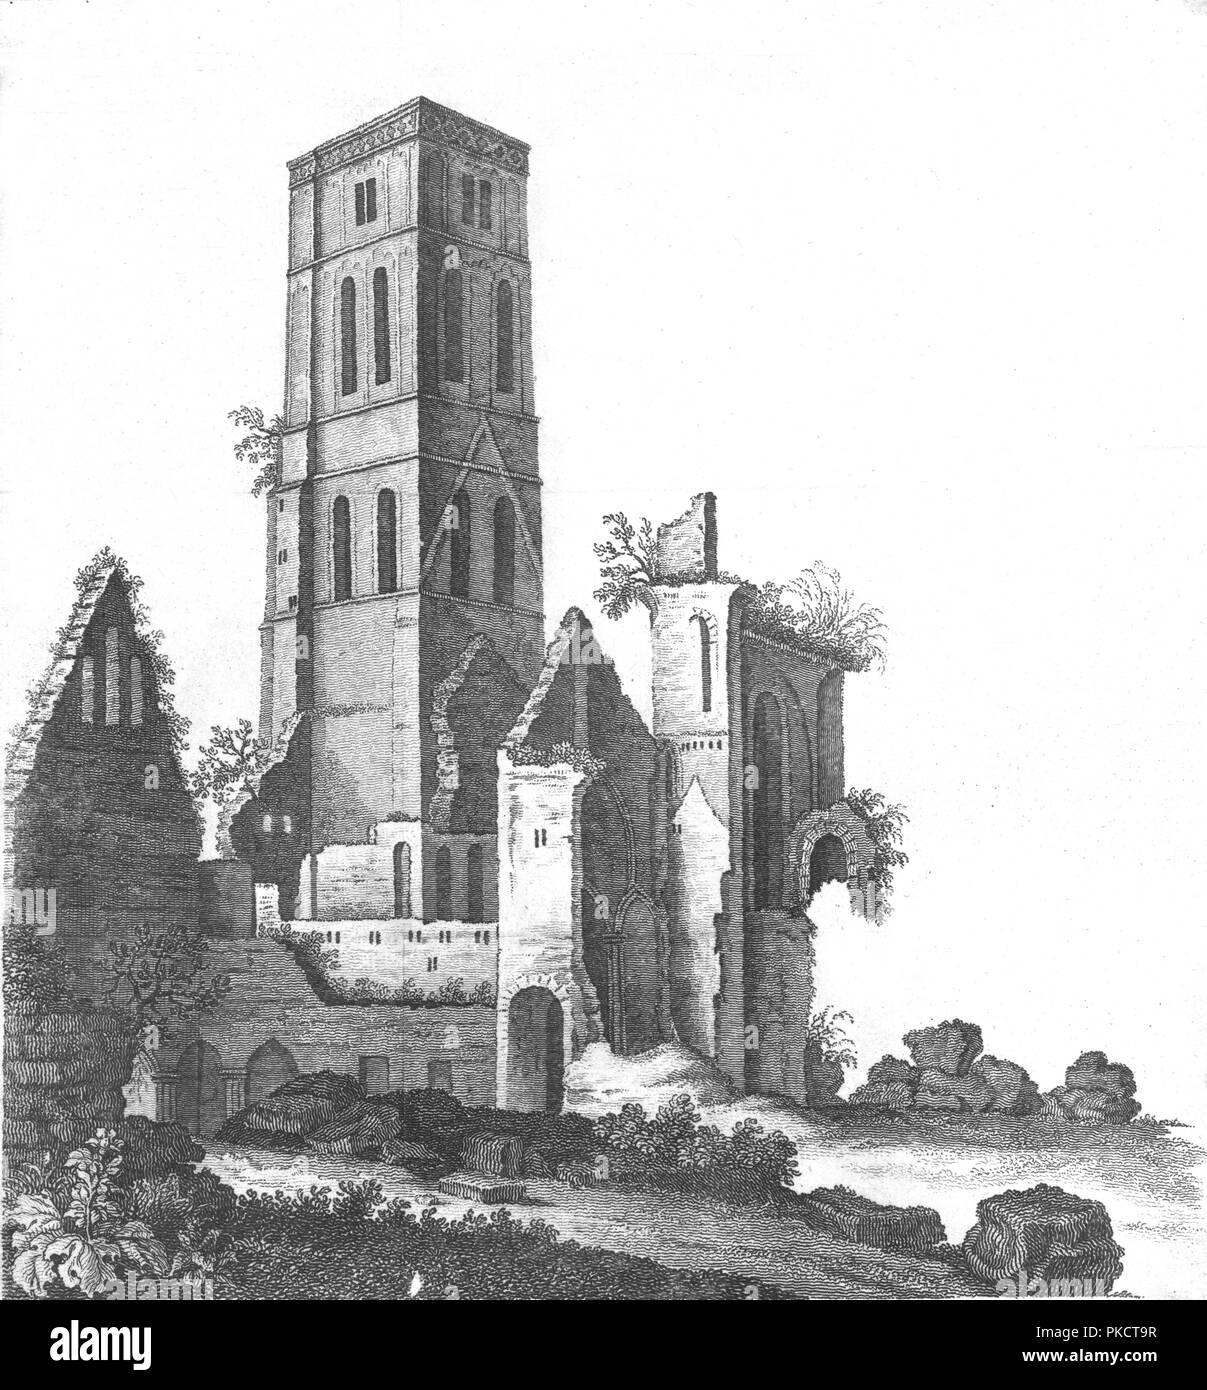 Osney Abbey near Oxford, late 18th-early 19th century. Artist: Unknown. - Stock Image